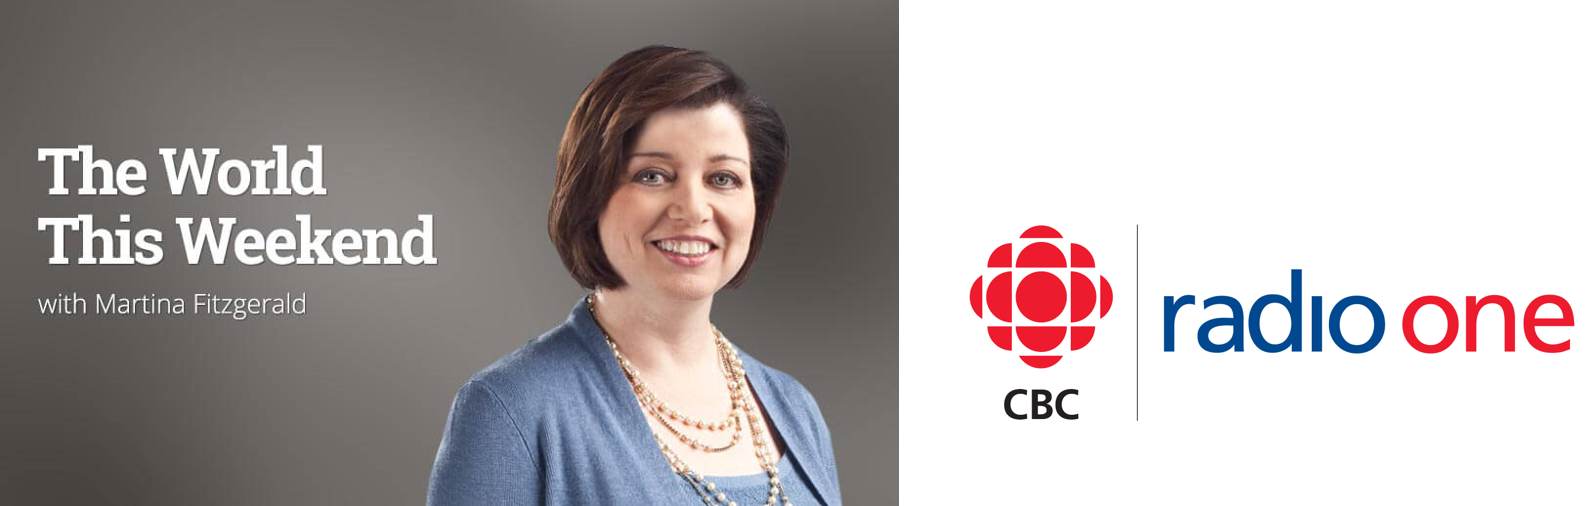 The World This Weekend CBC Radio 1